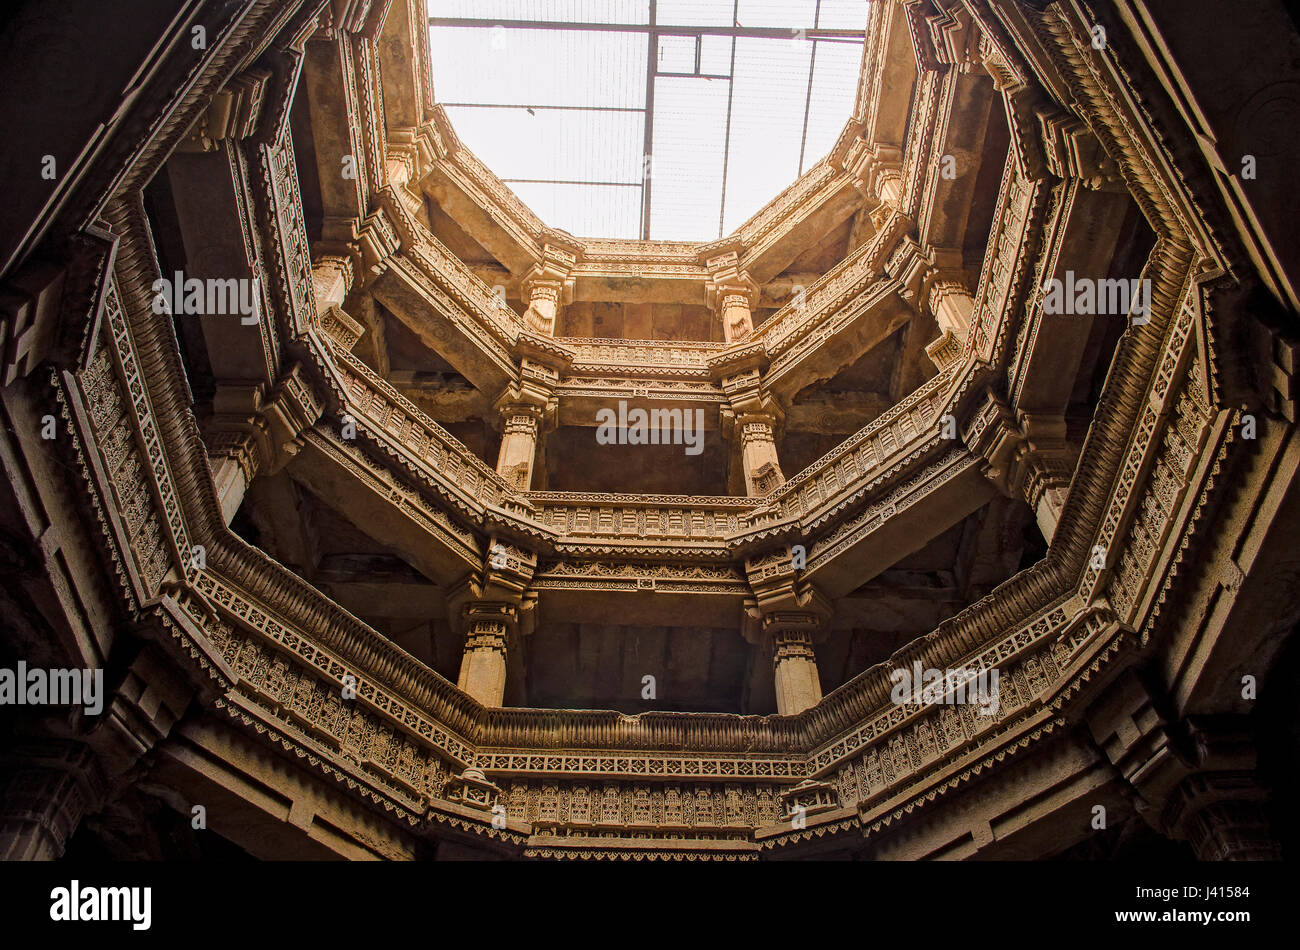 Adalaj stepwell from bottom to top view- Indian Heritage tourist place - Stock Image